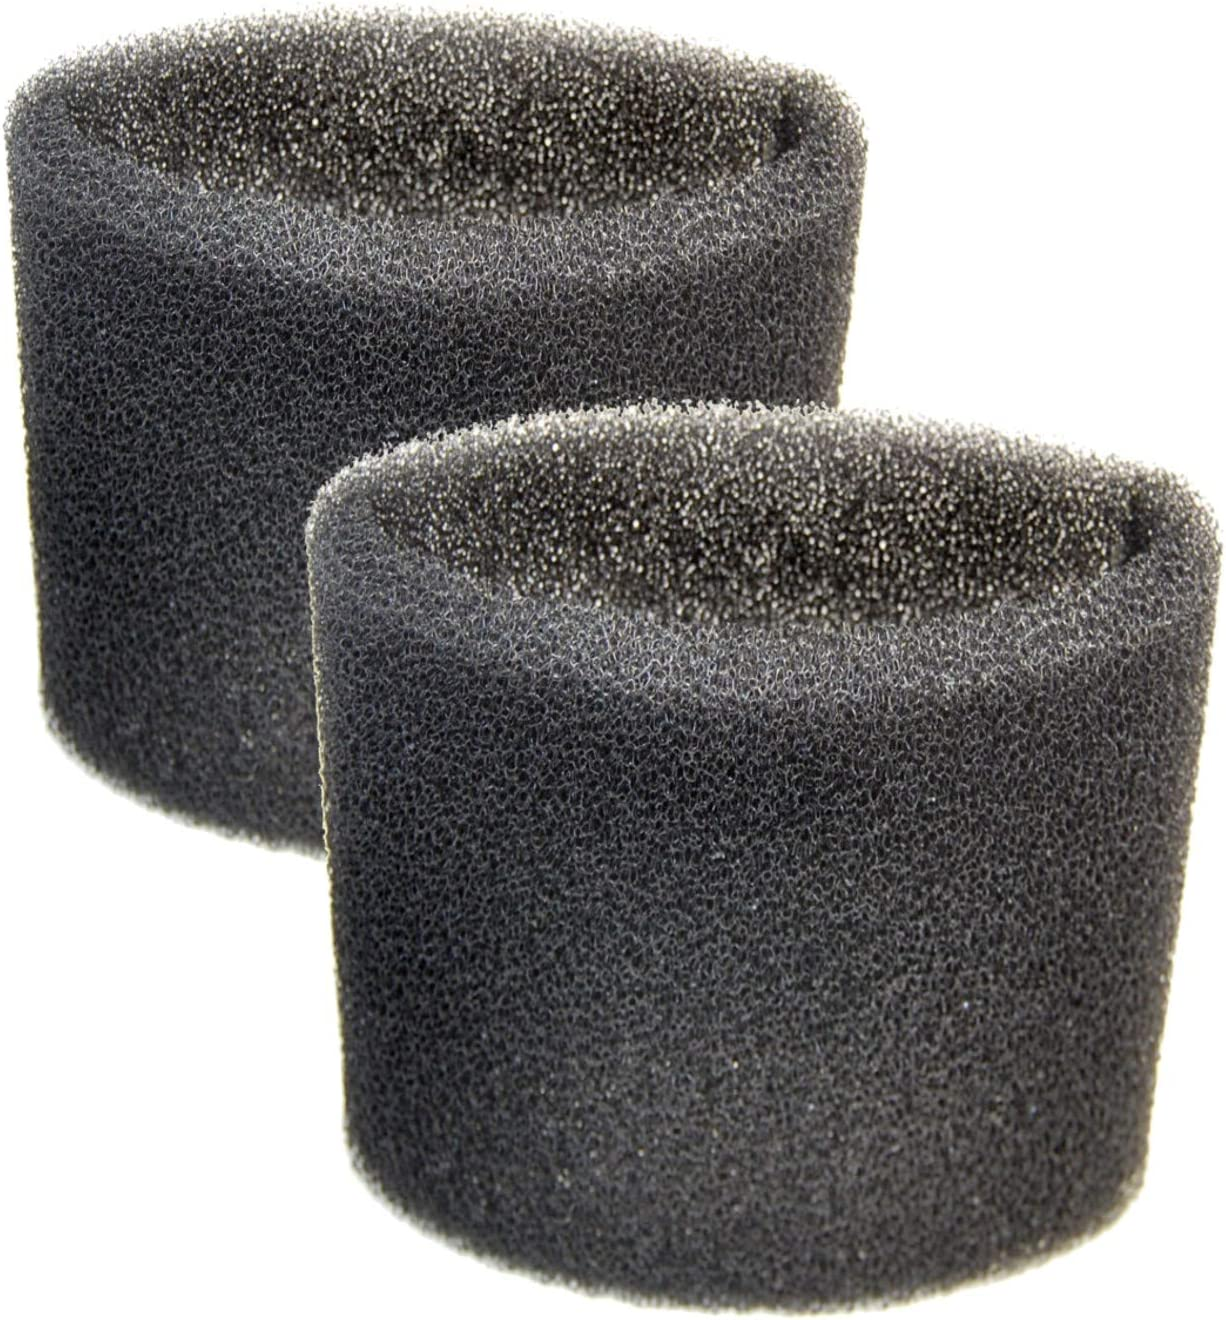 HQRP 2-Pack Foam Sleeve Filter Compatible with Shop-Vac Wet/Dry Vacuums 5-Gallon and Above, Type R 90585 9058500 905-85-00 905-85 Replacement